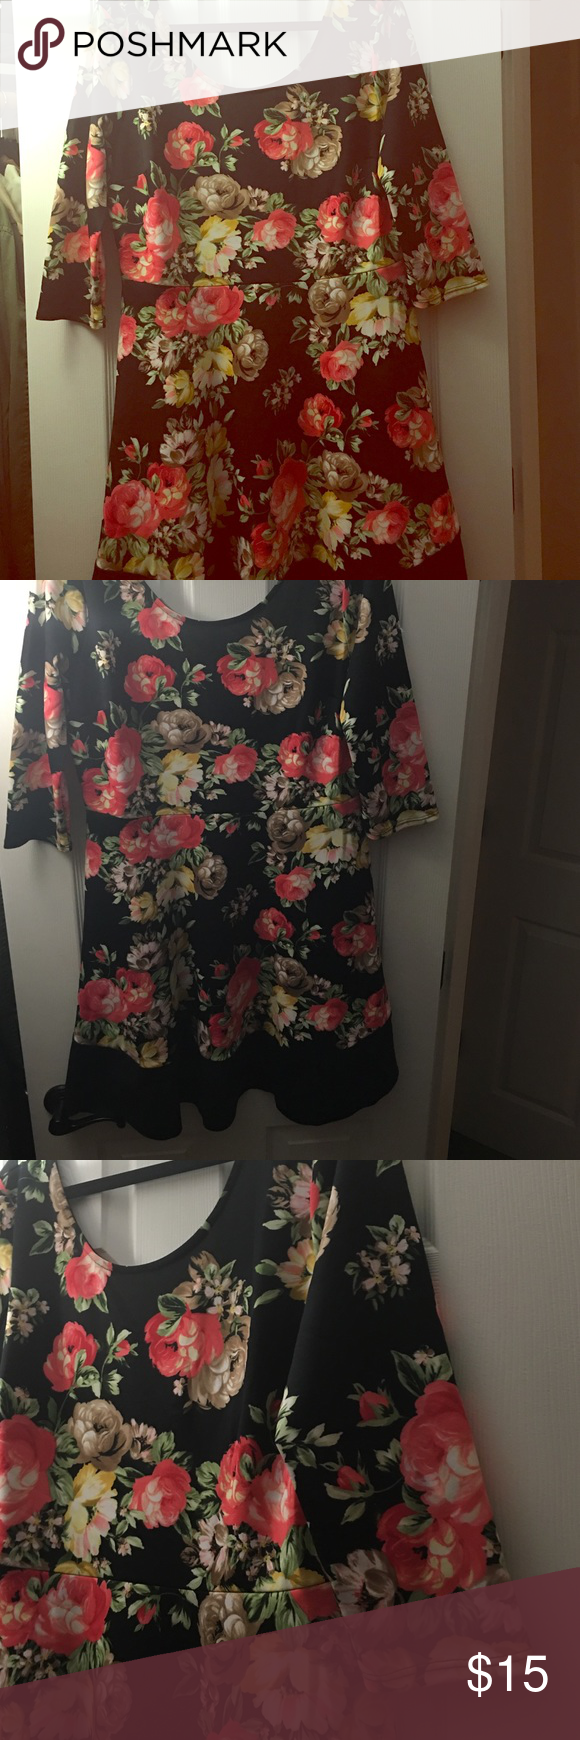 X floral black dress stretchy material floral and customer support